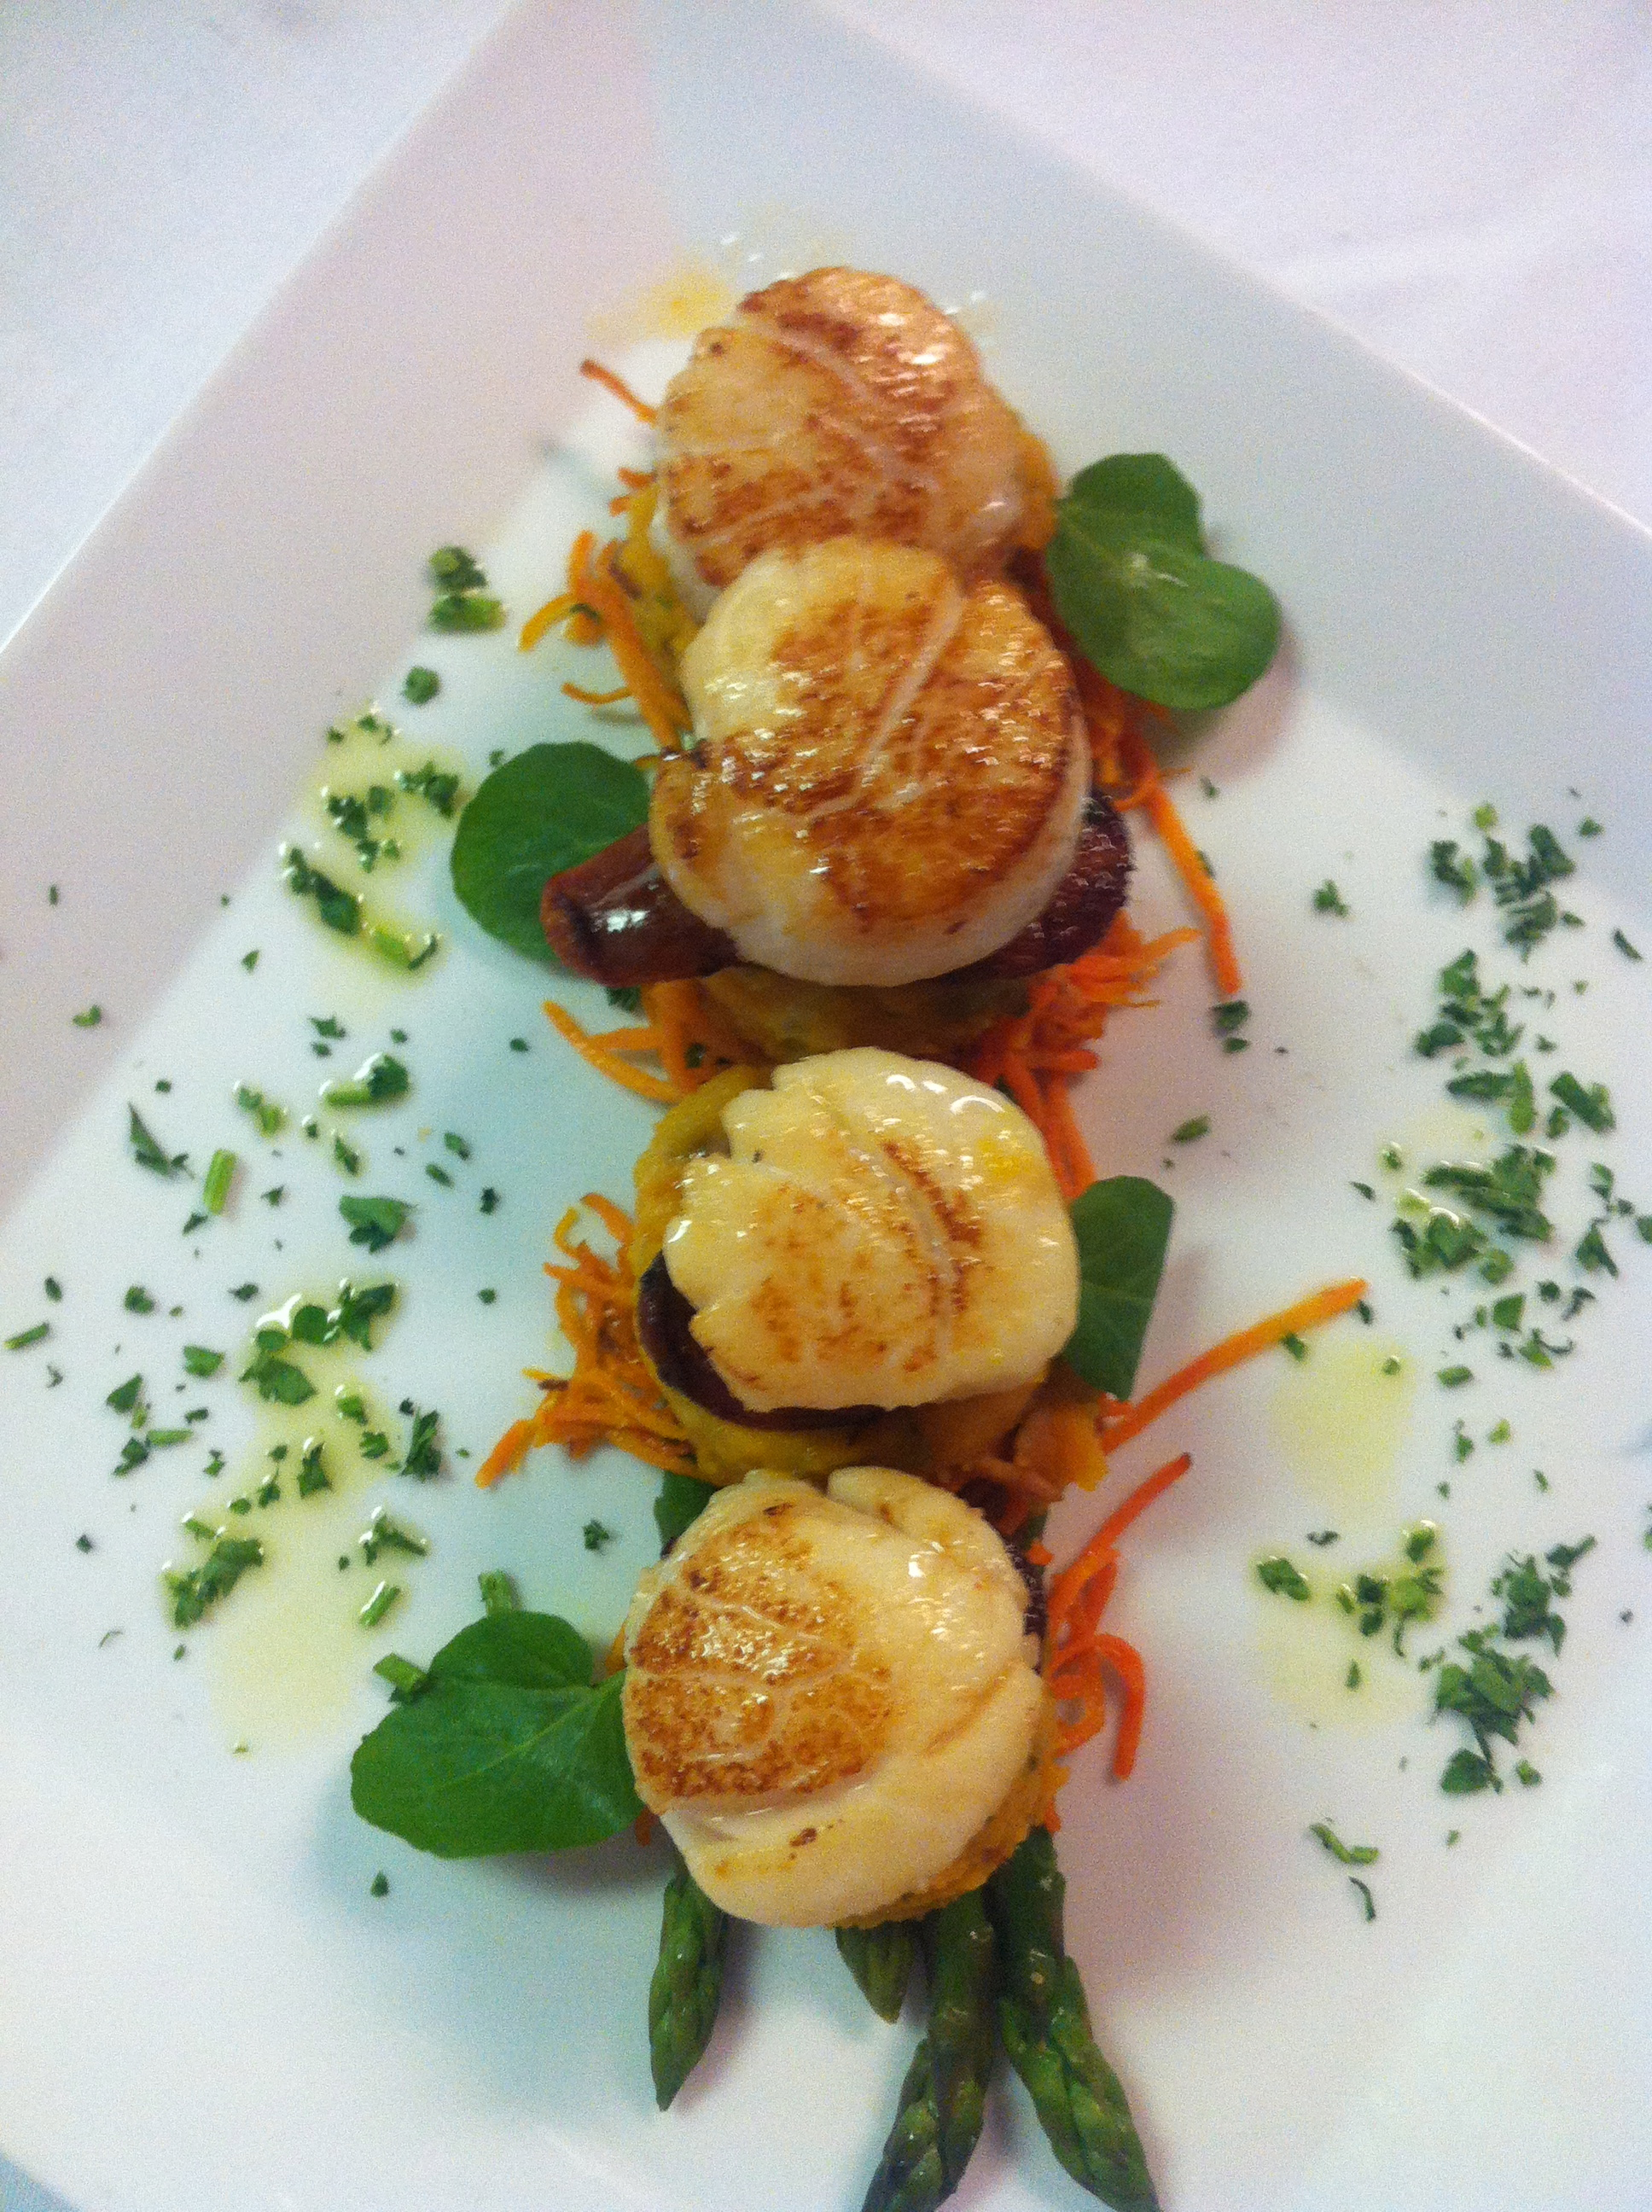 Scallops are so tender here